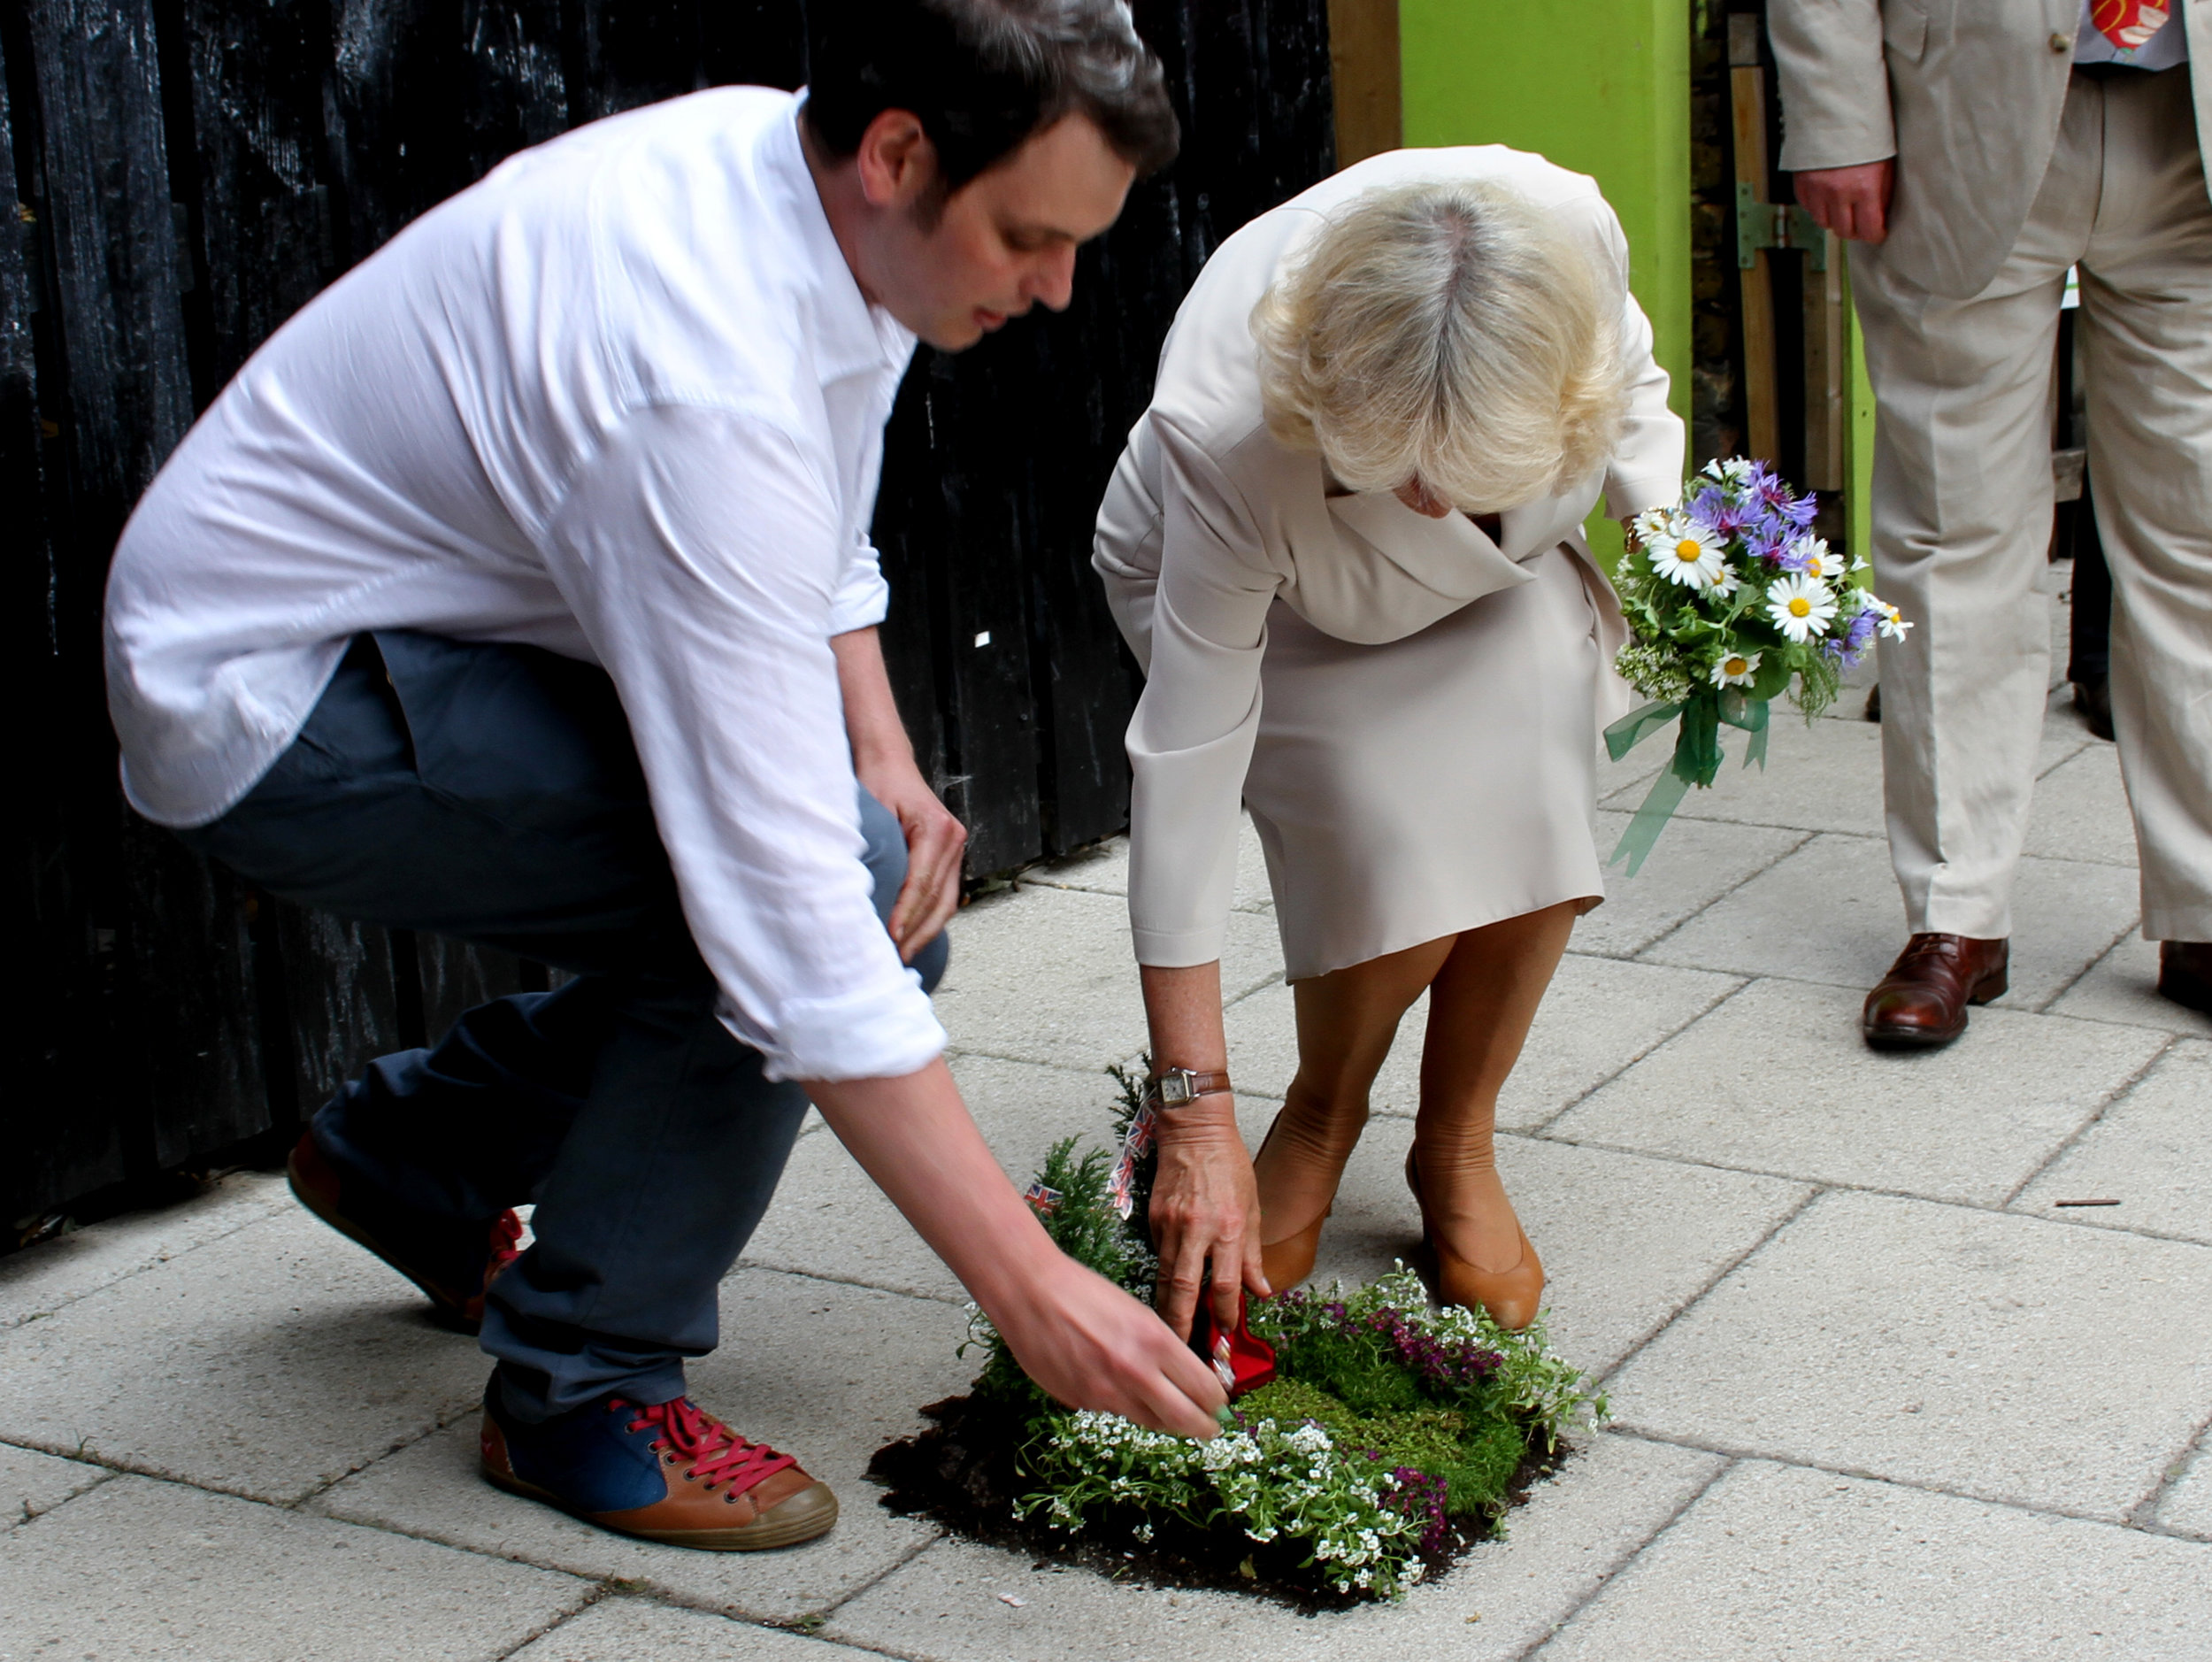 Queens Jubilee Pothole garden with camilla